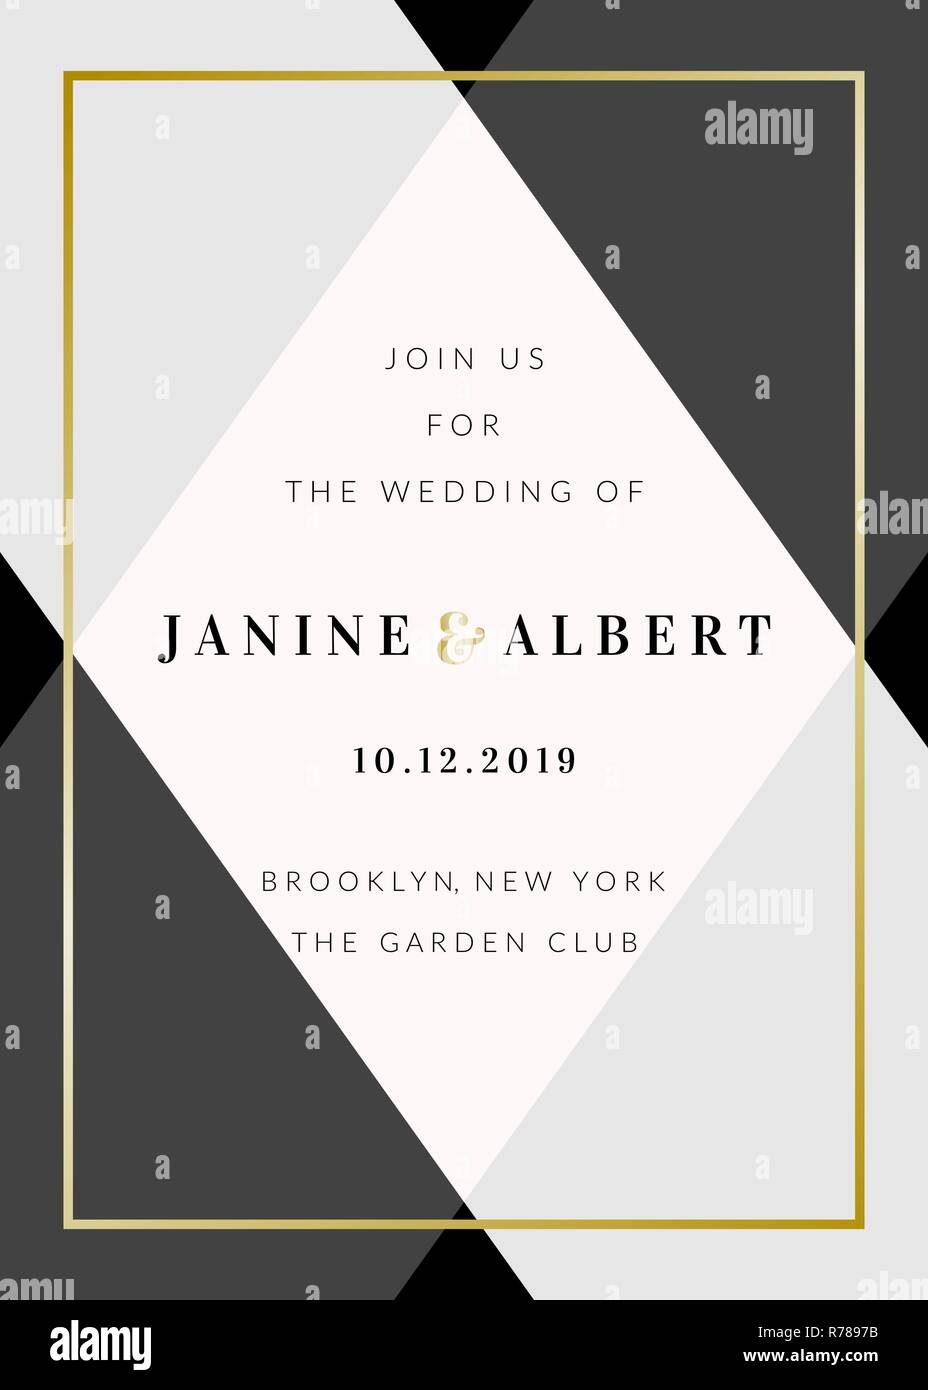 Wedding invitation template with geometric elements in black and gray, gold  decoration, sample text layout. Vector greeting card, bridal shower, broch  Stock Vector Image & Art - Alamy